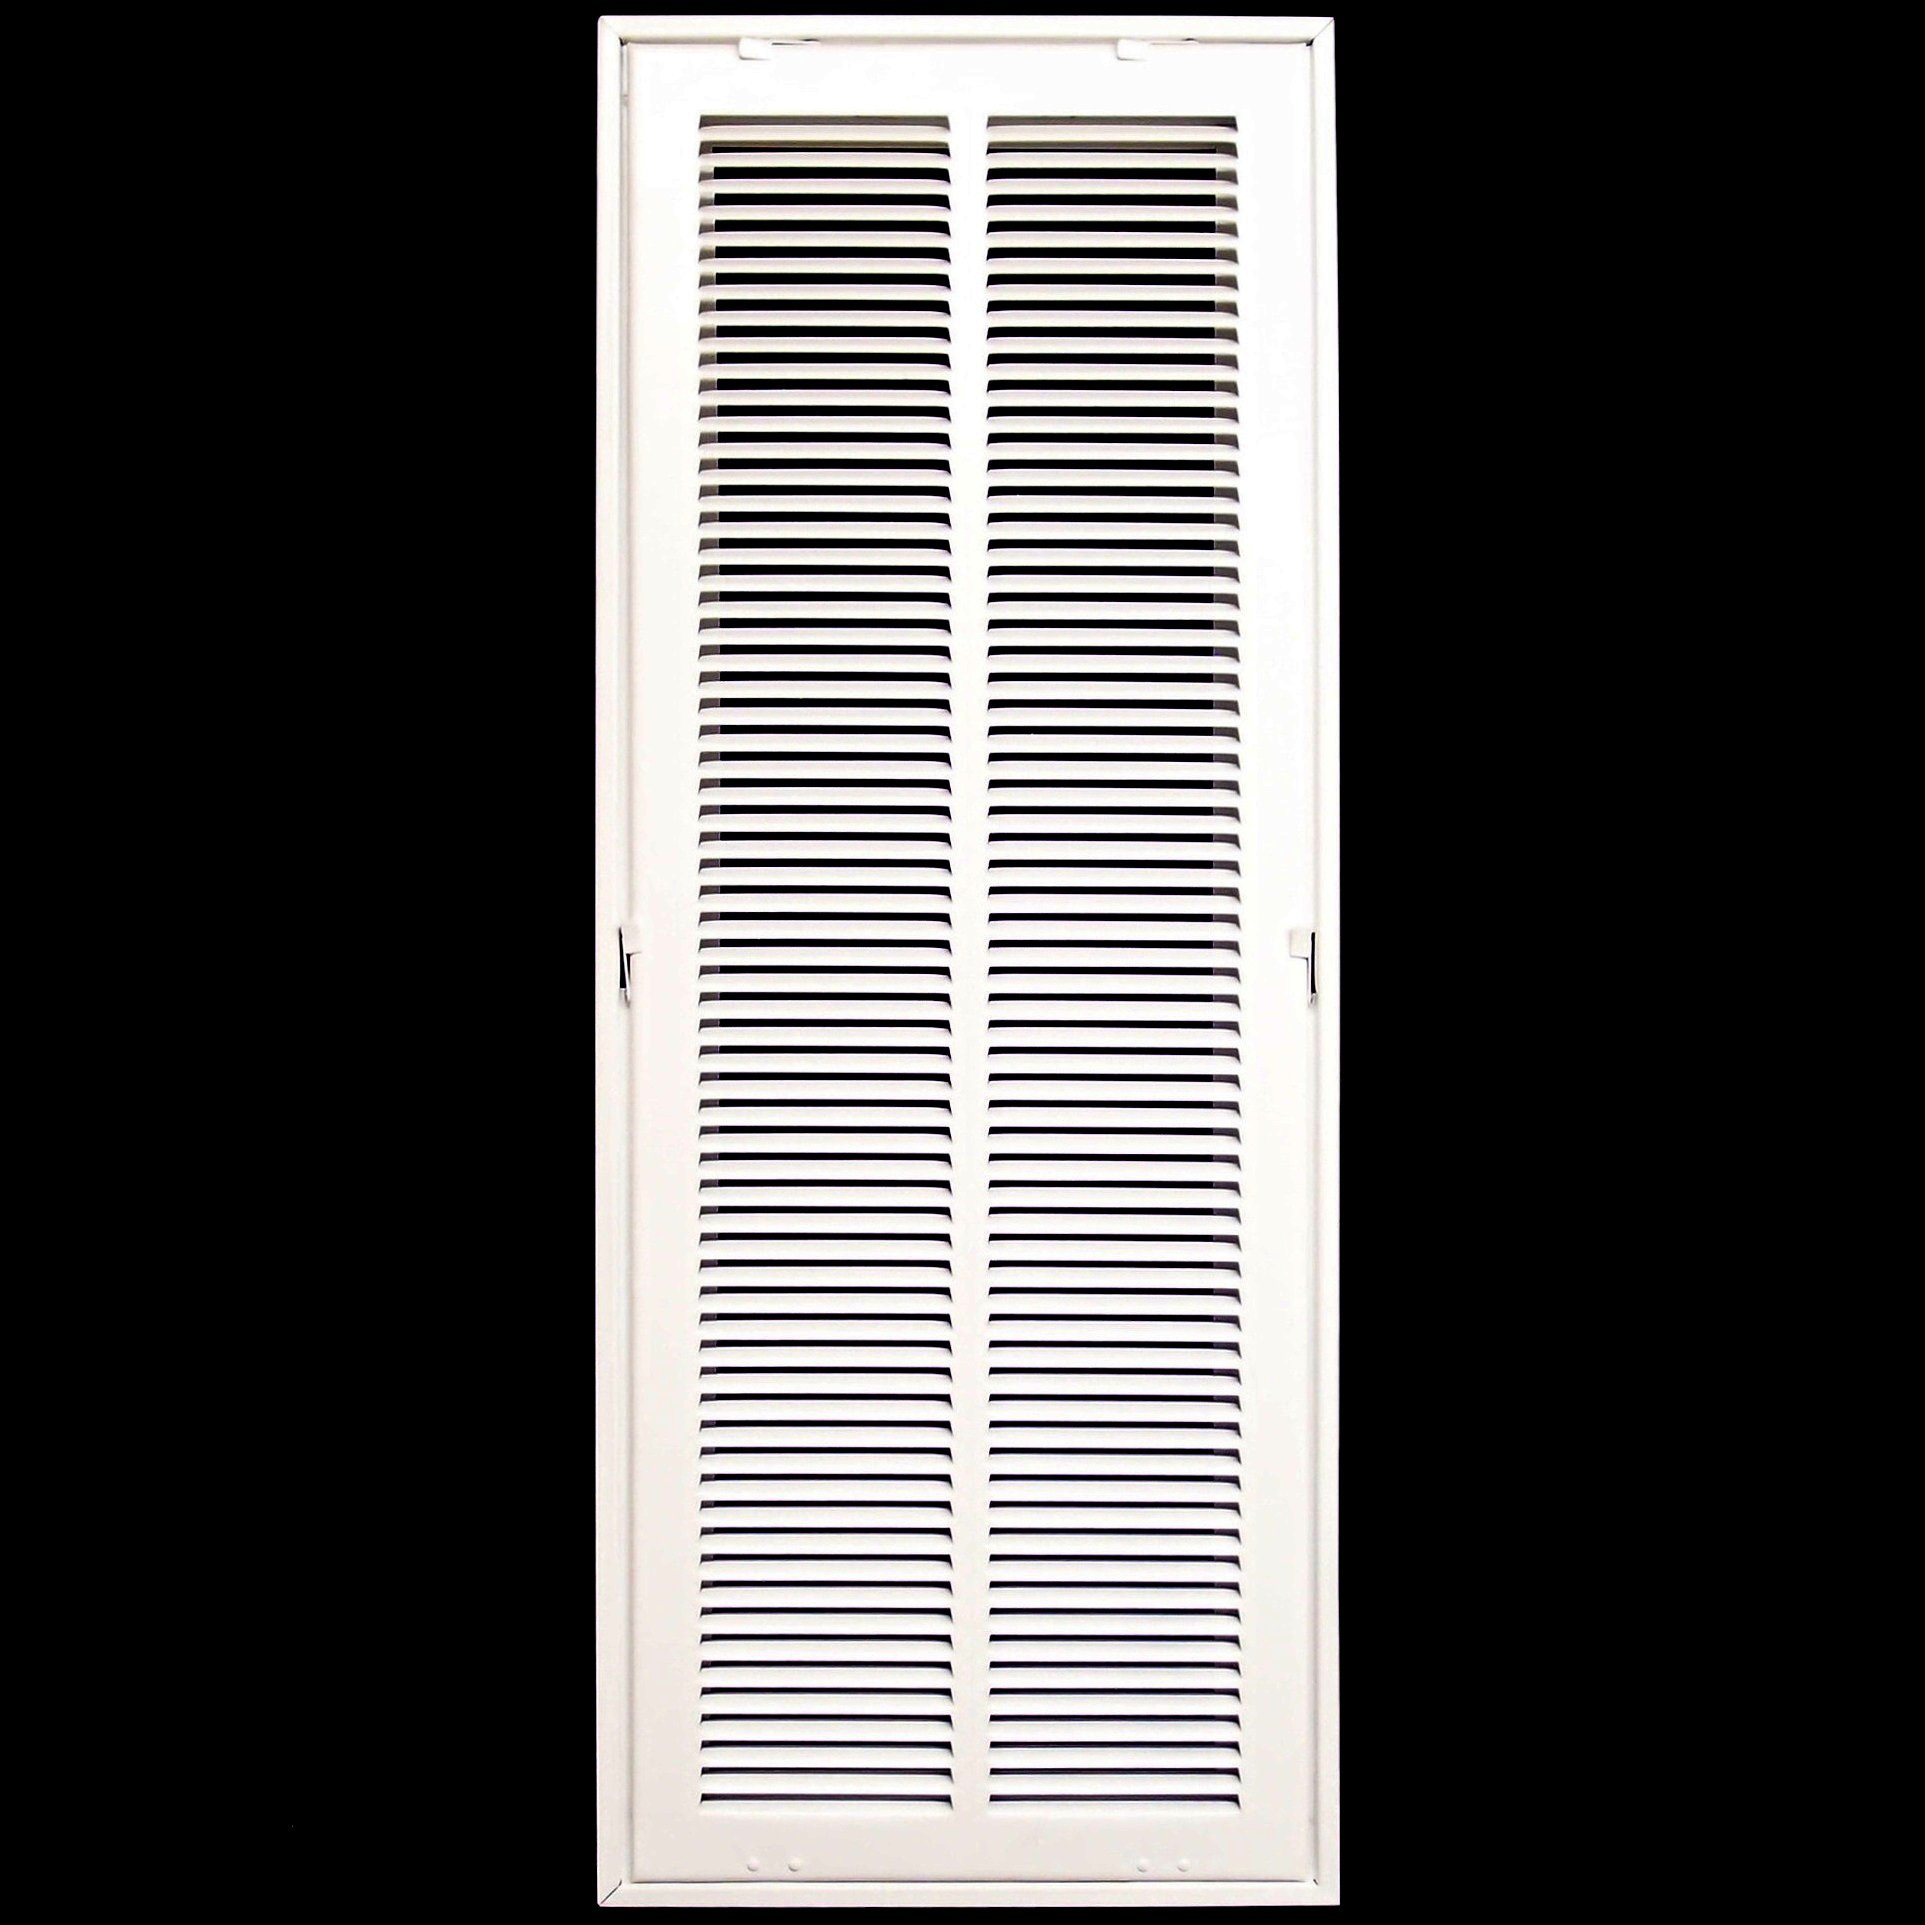 10'' X 30 Steel Return Air Filter Grille for 1'' Filter - Removable Face/Door - HVAC DUCT COVER - Flat Stamped Face - White [Outer Dimensions: 12.5''w X 32.5''h]